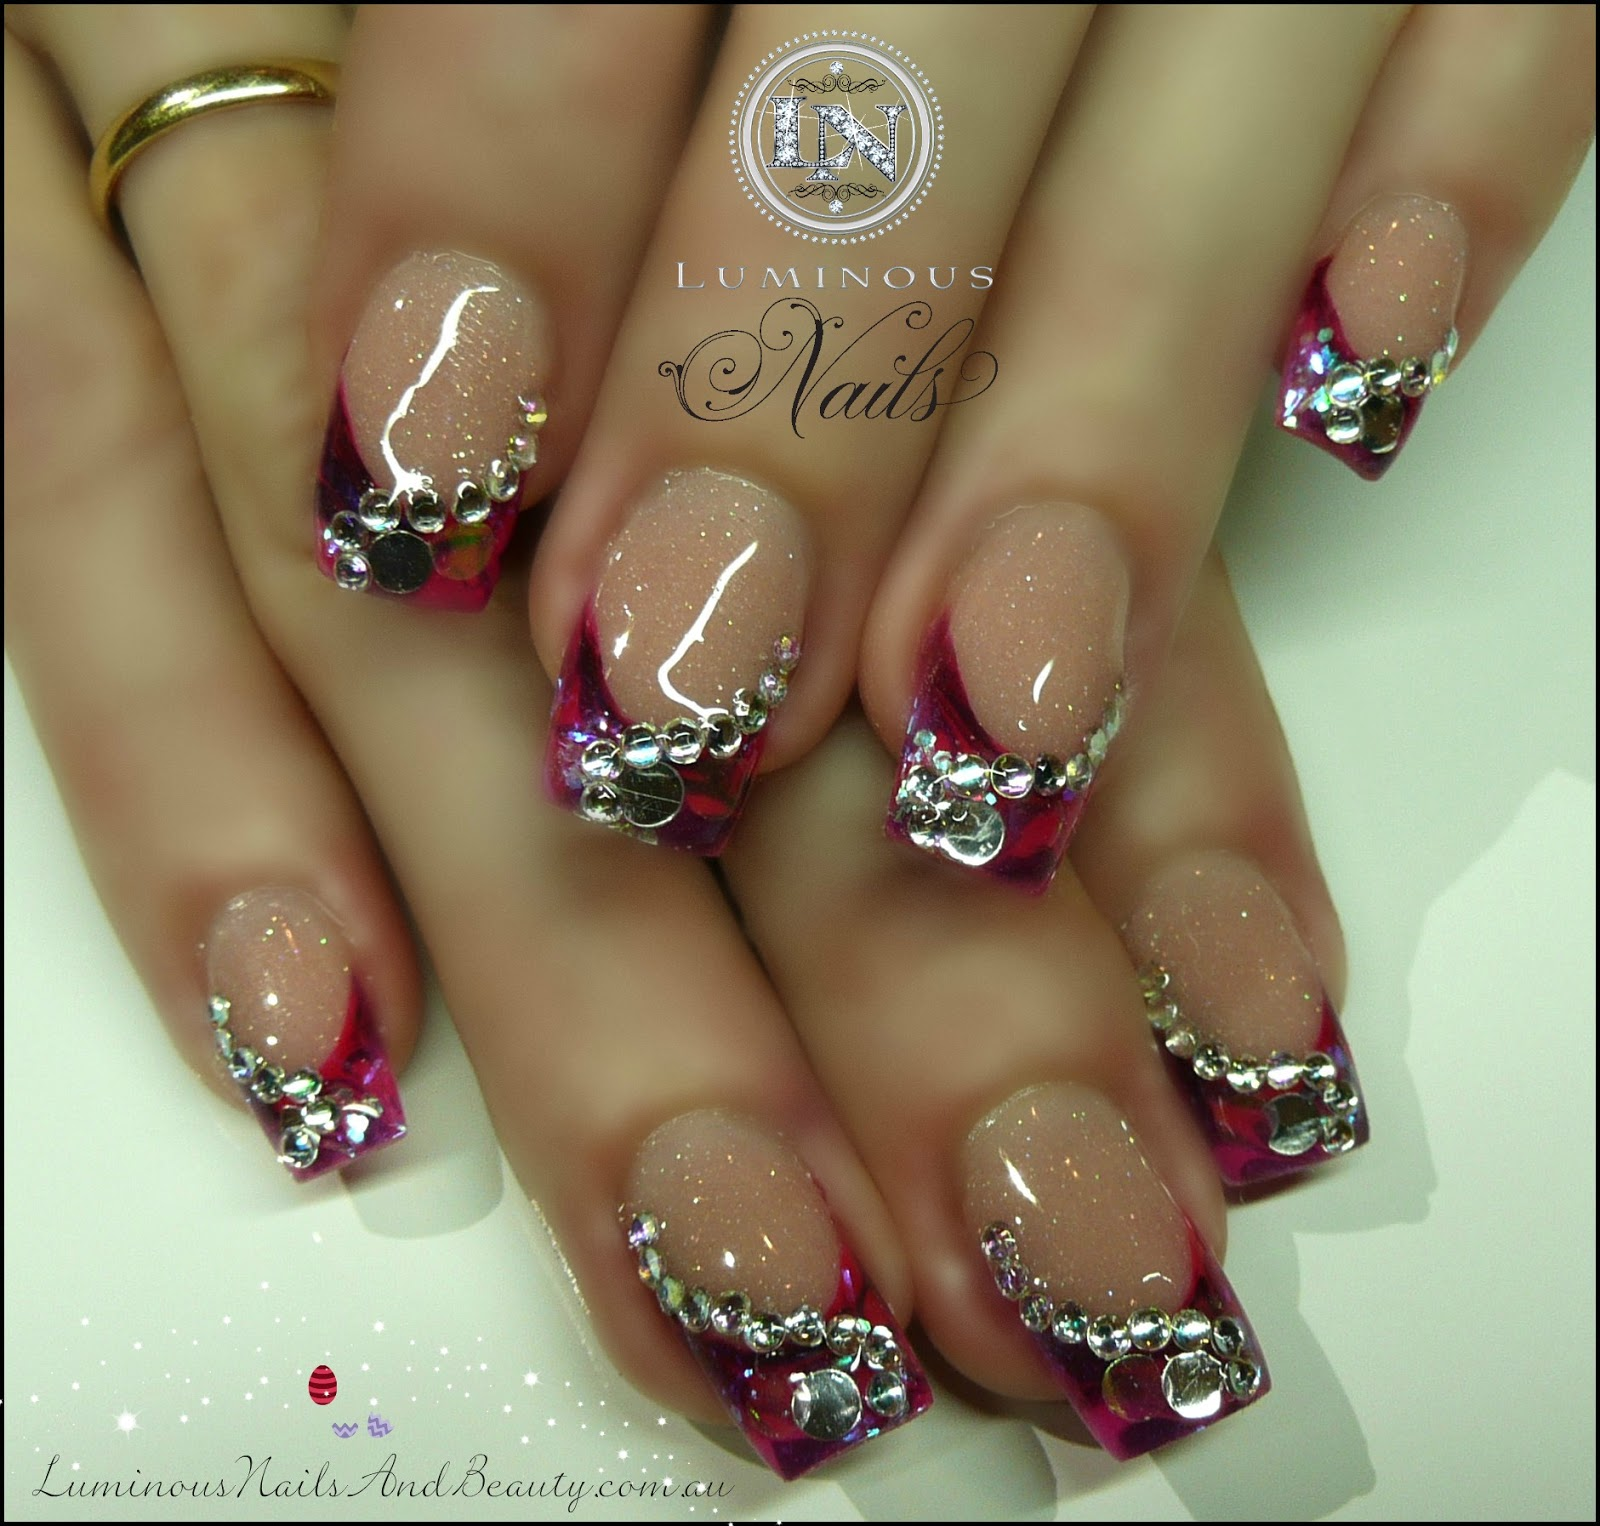 The Amusing Pink and purple nail designs Images